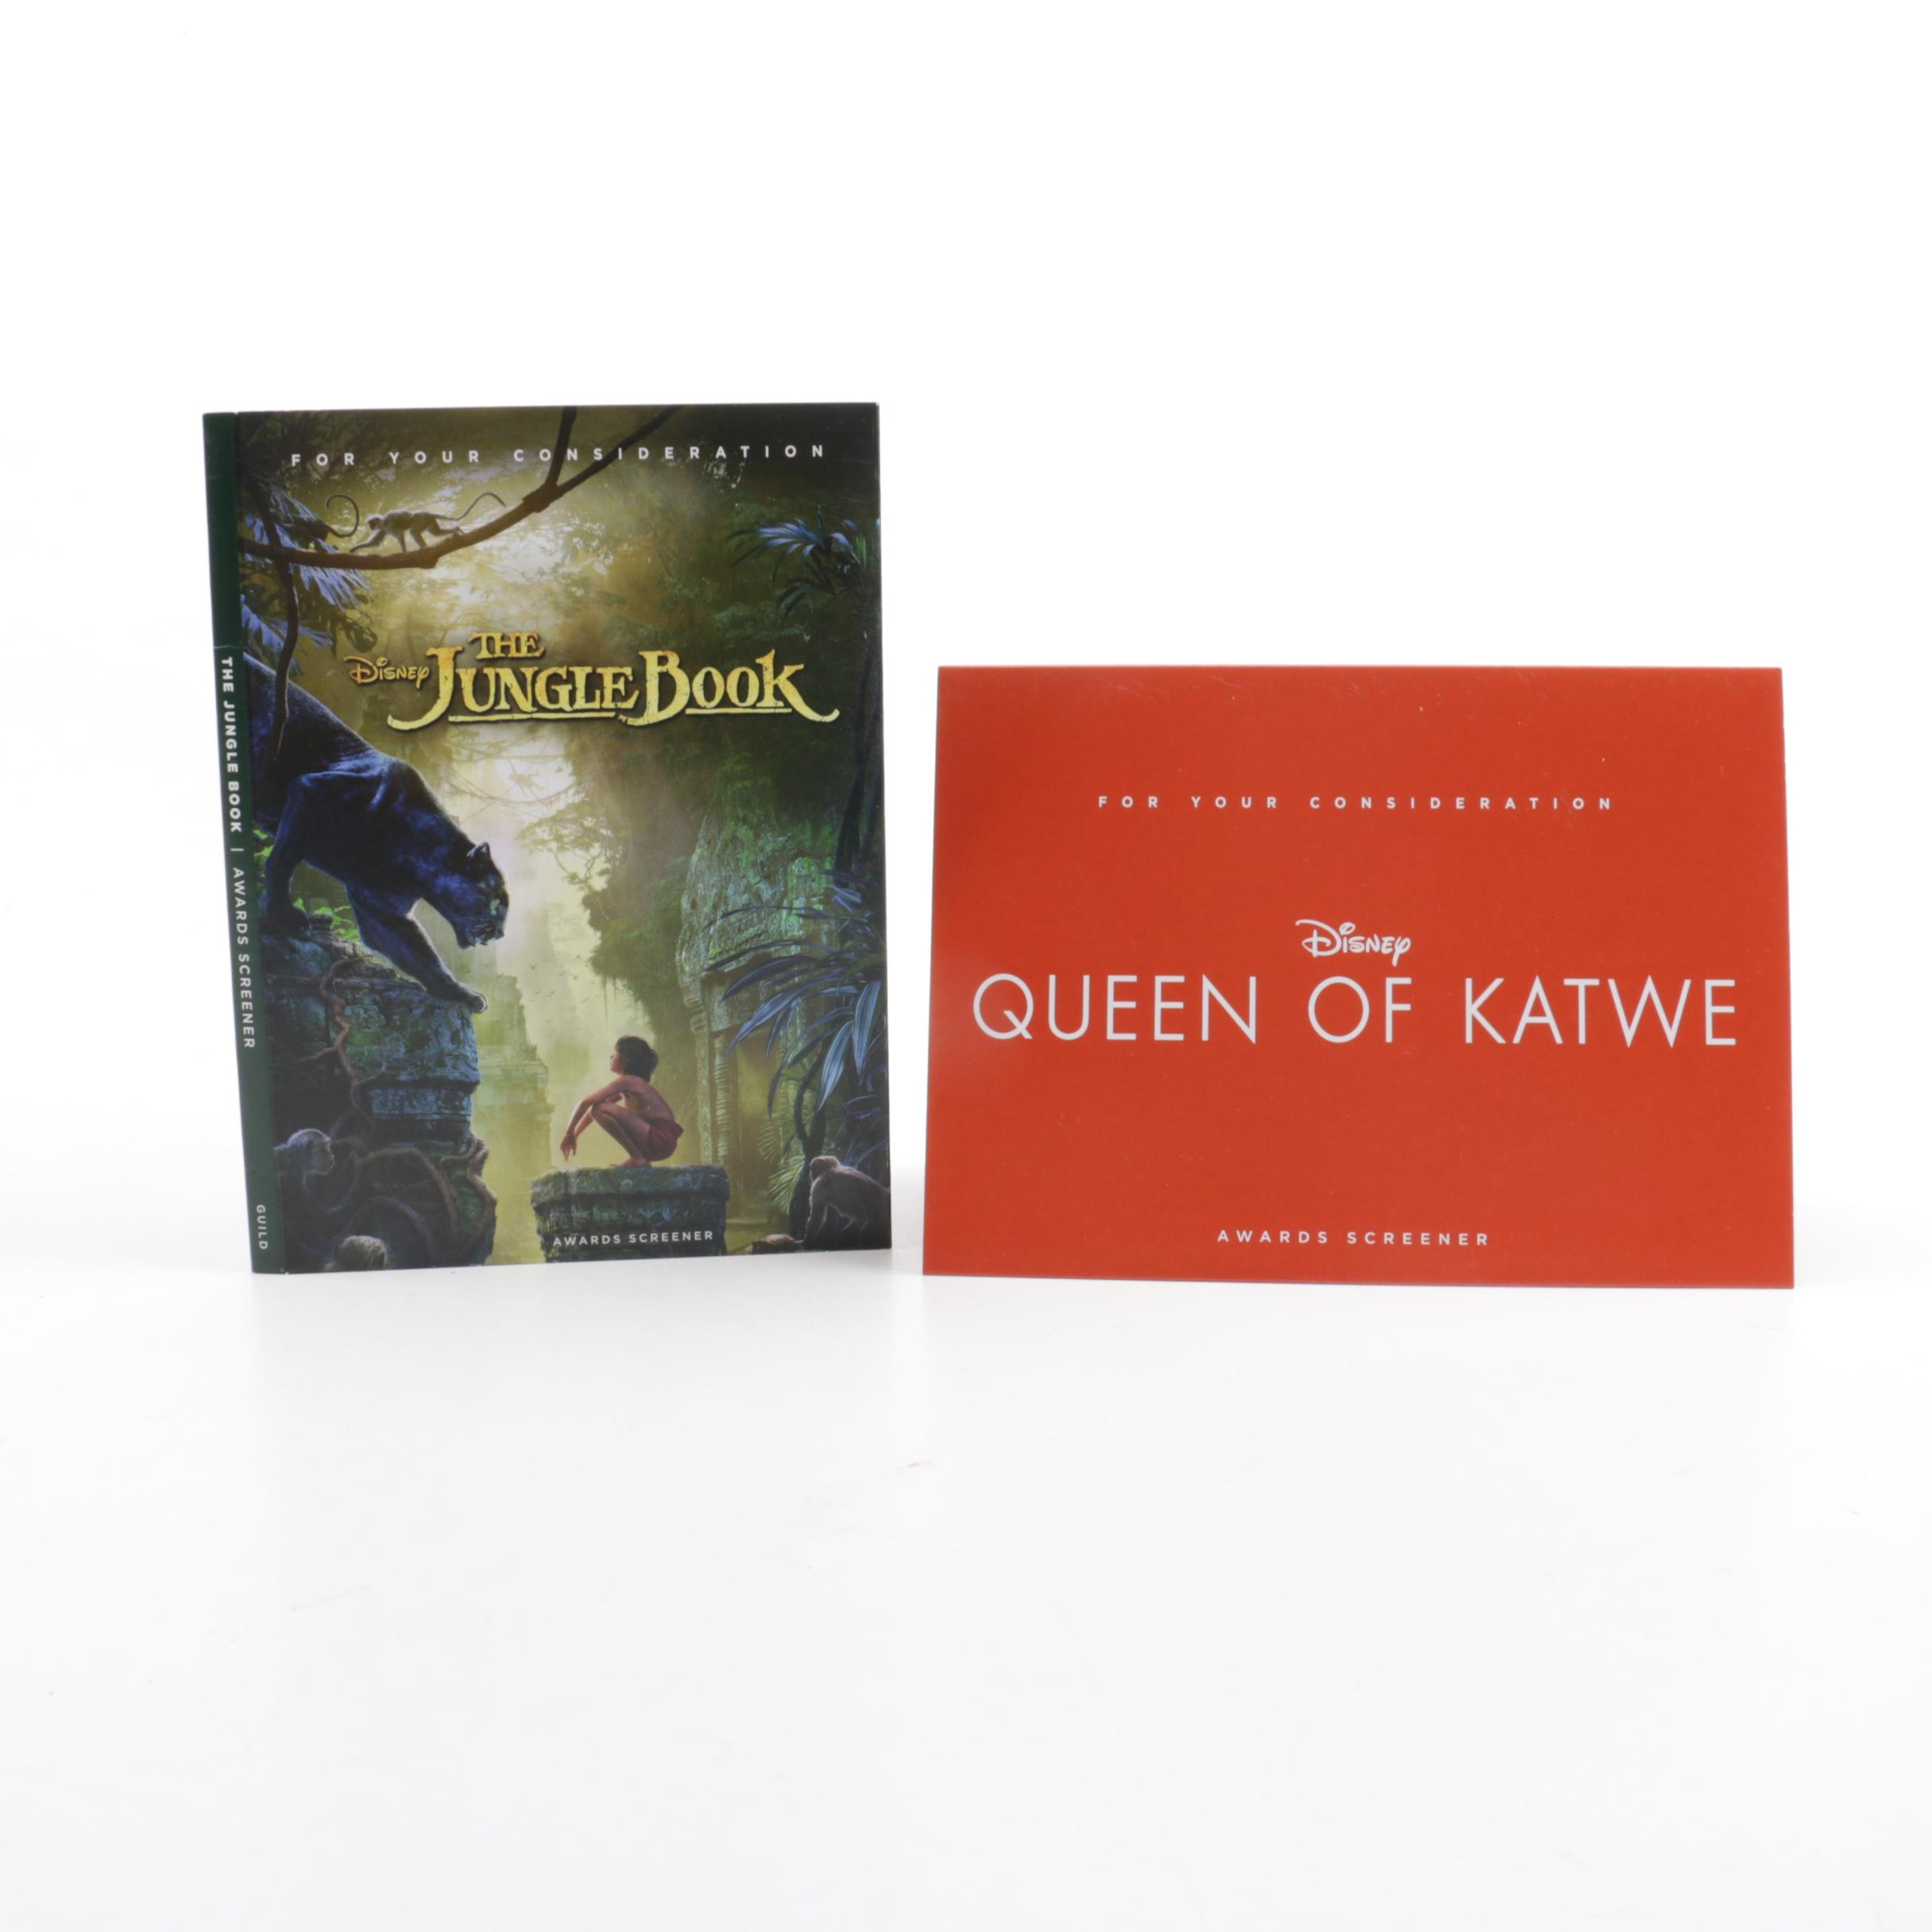 """Award Screener Copies of """"The Jungle Book"""" and """"Queen of Katwe"""" DVDs"""